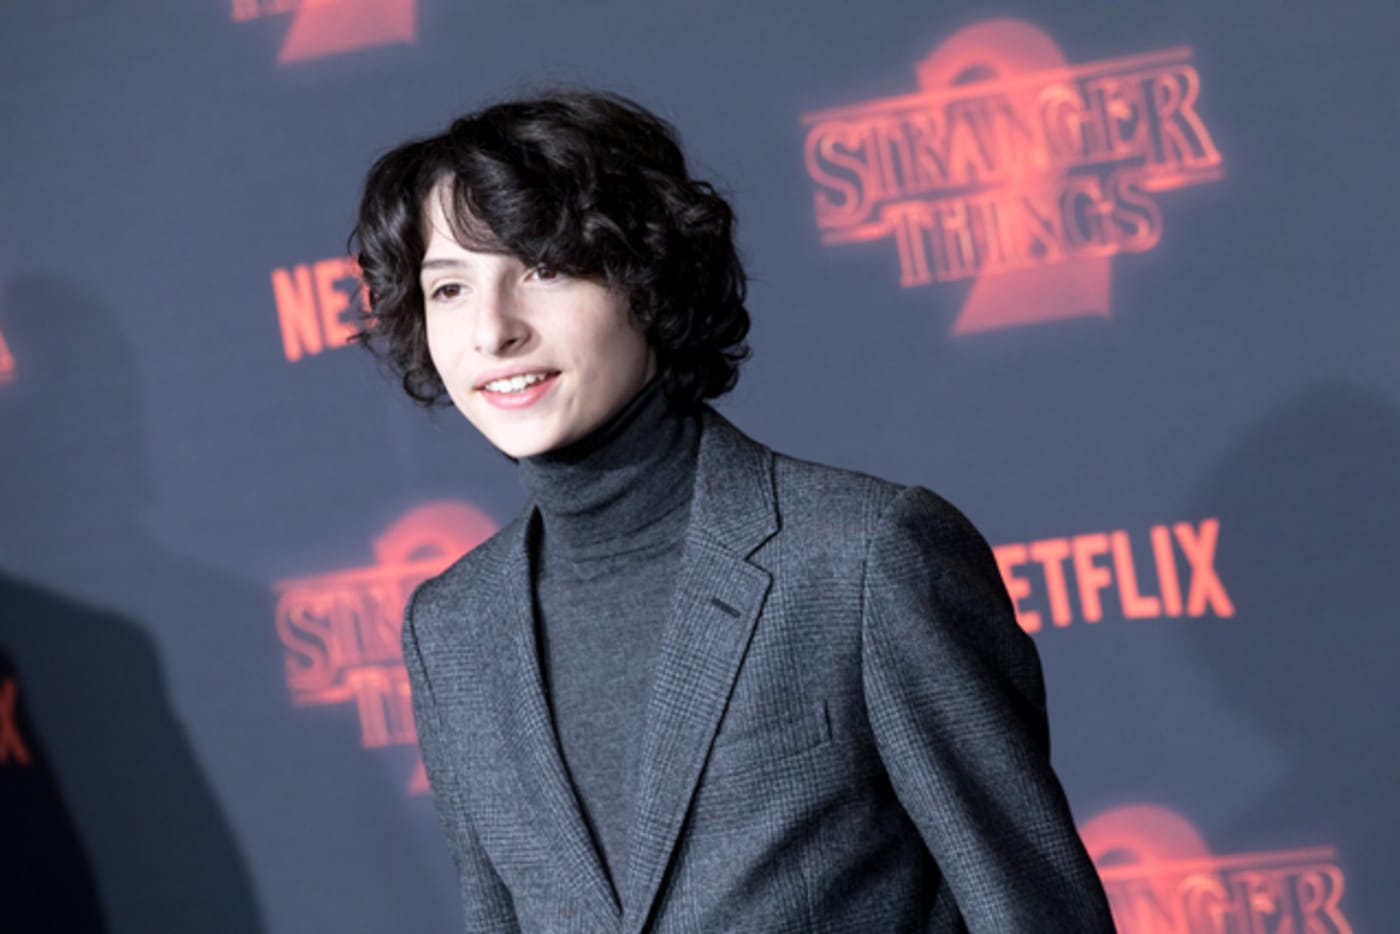 Finn Wolfhard attends 'Stranger Things 2' premiere